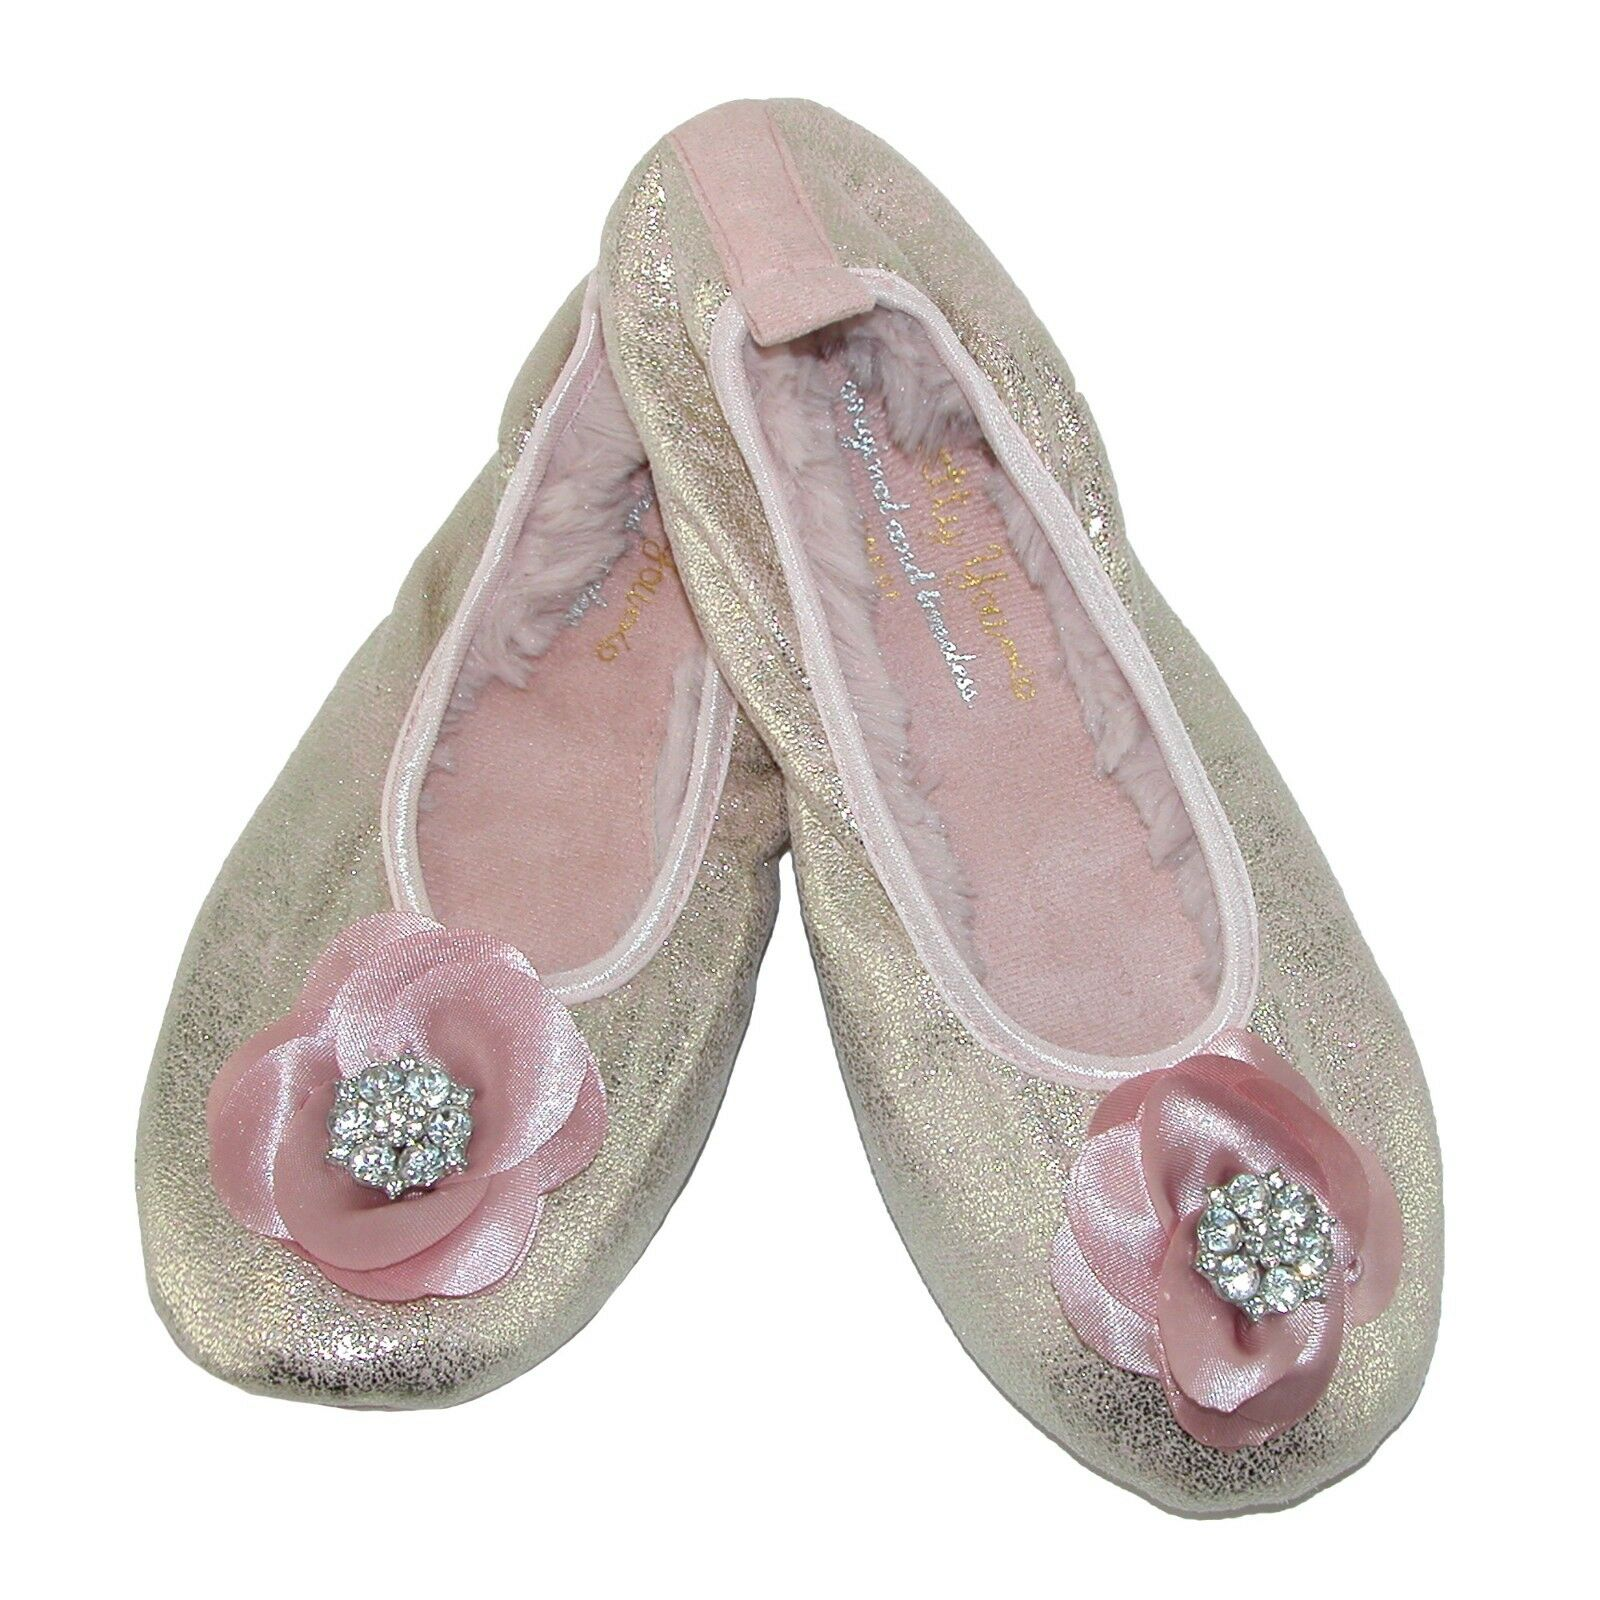 New Pretty You London Women's Pink Shimmer Ballerina Slippers Size L Large 8-9